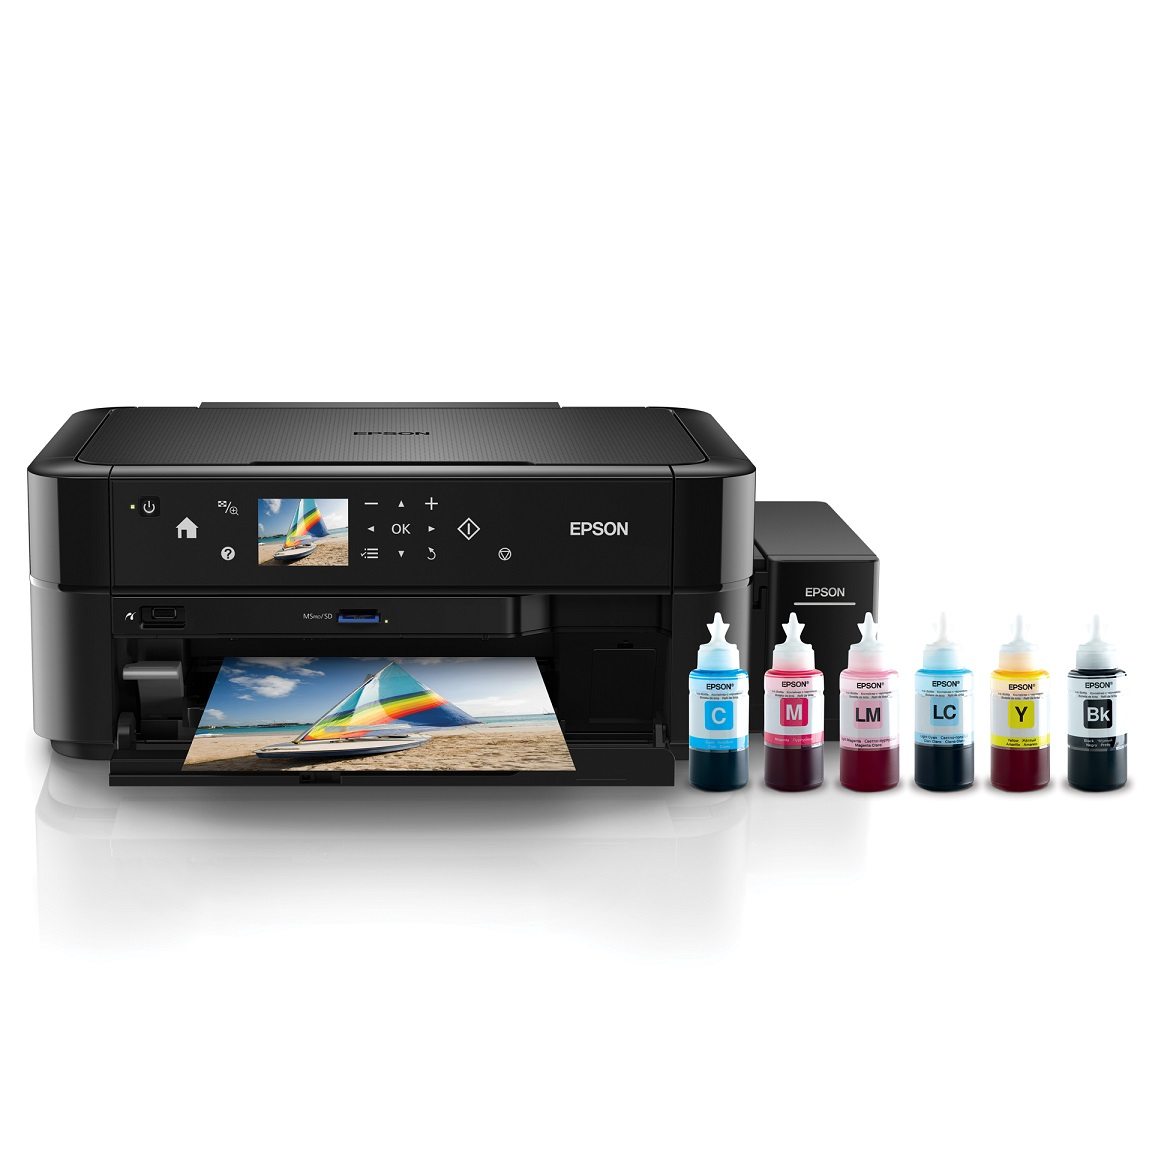 EPSON L850, A4, 5.760 x 1.440, 5 ppm, 6 ink ITS